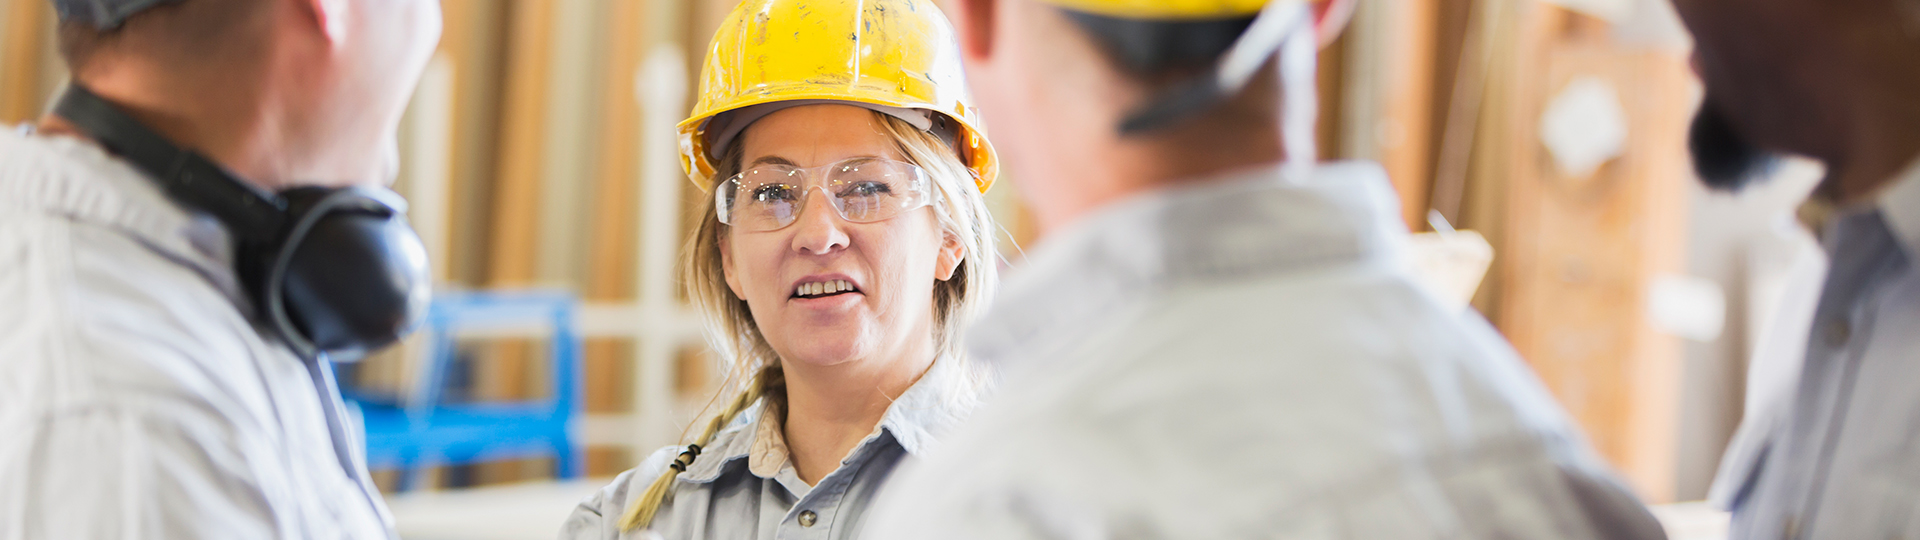 Female worker with hard hat speaking to others